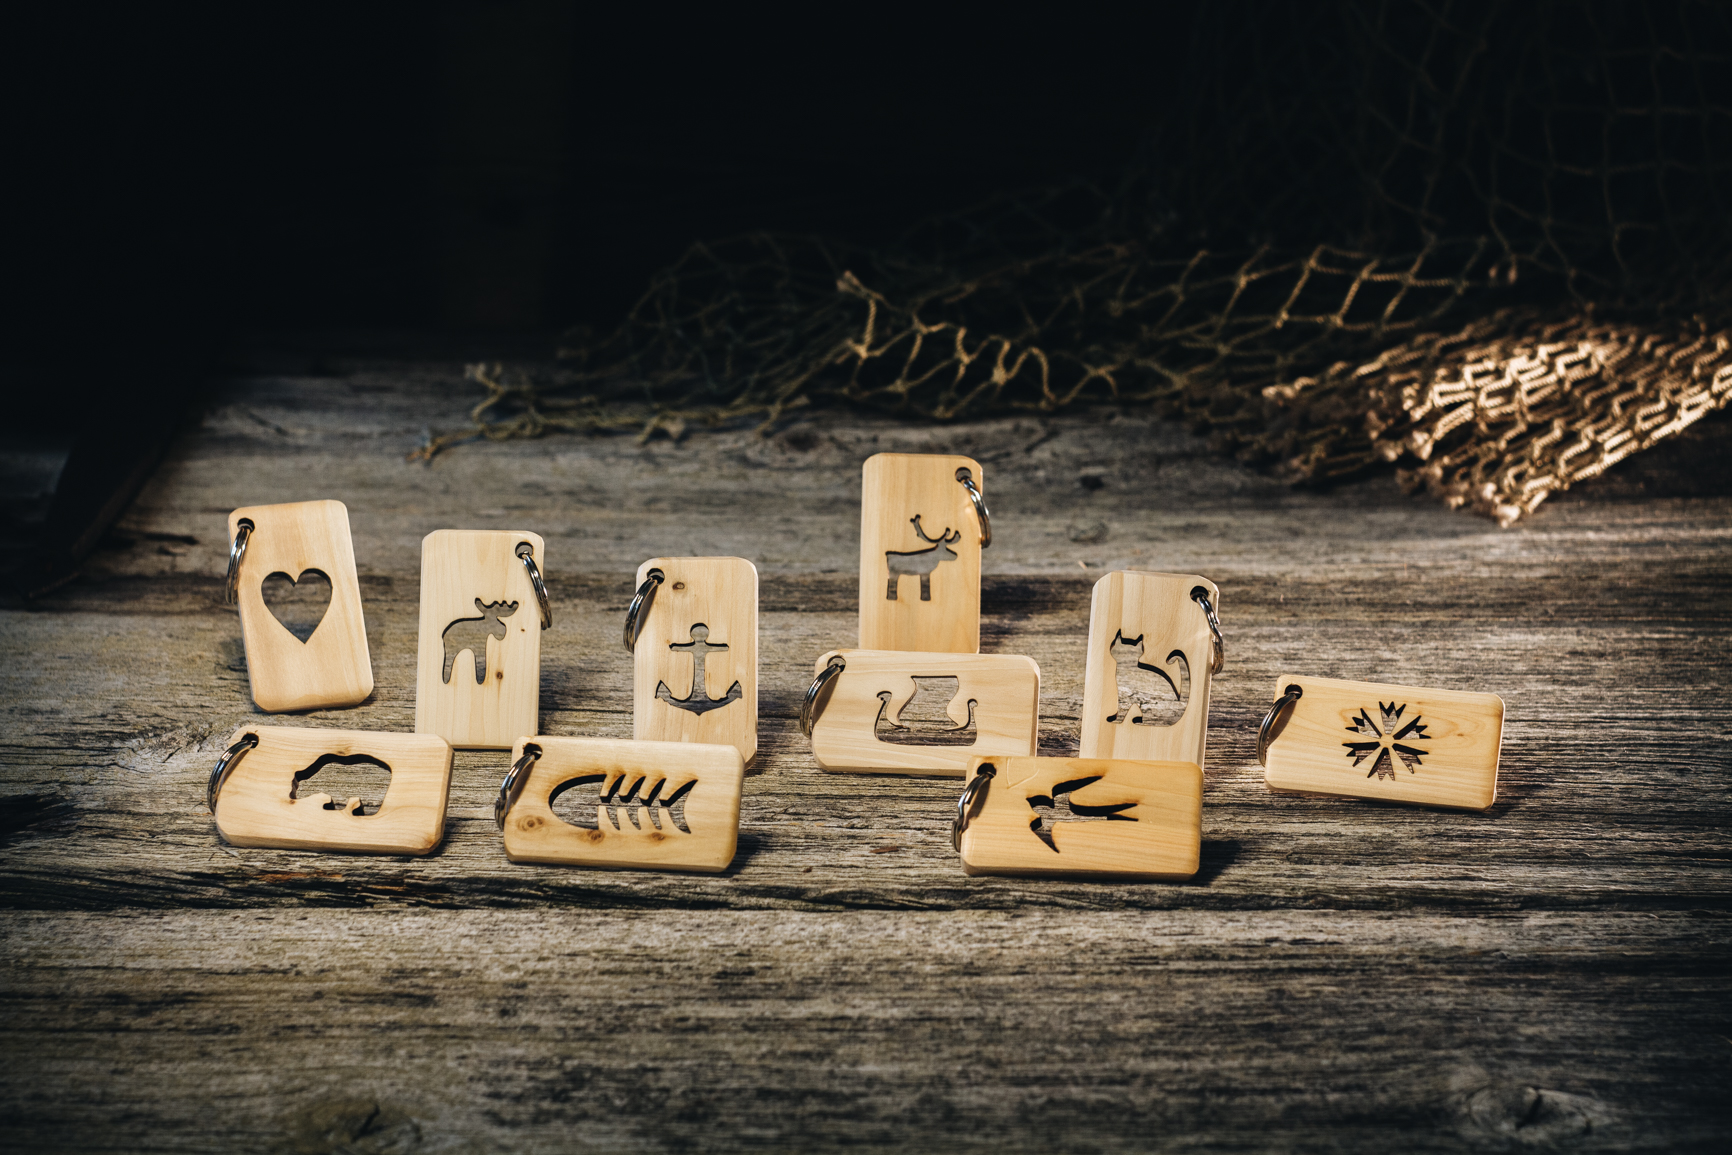 Keychain cutout shapes (juniper)